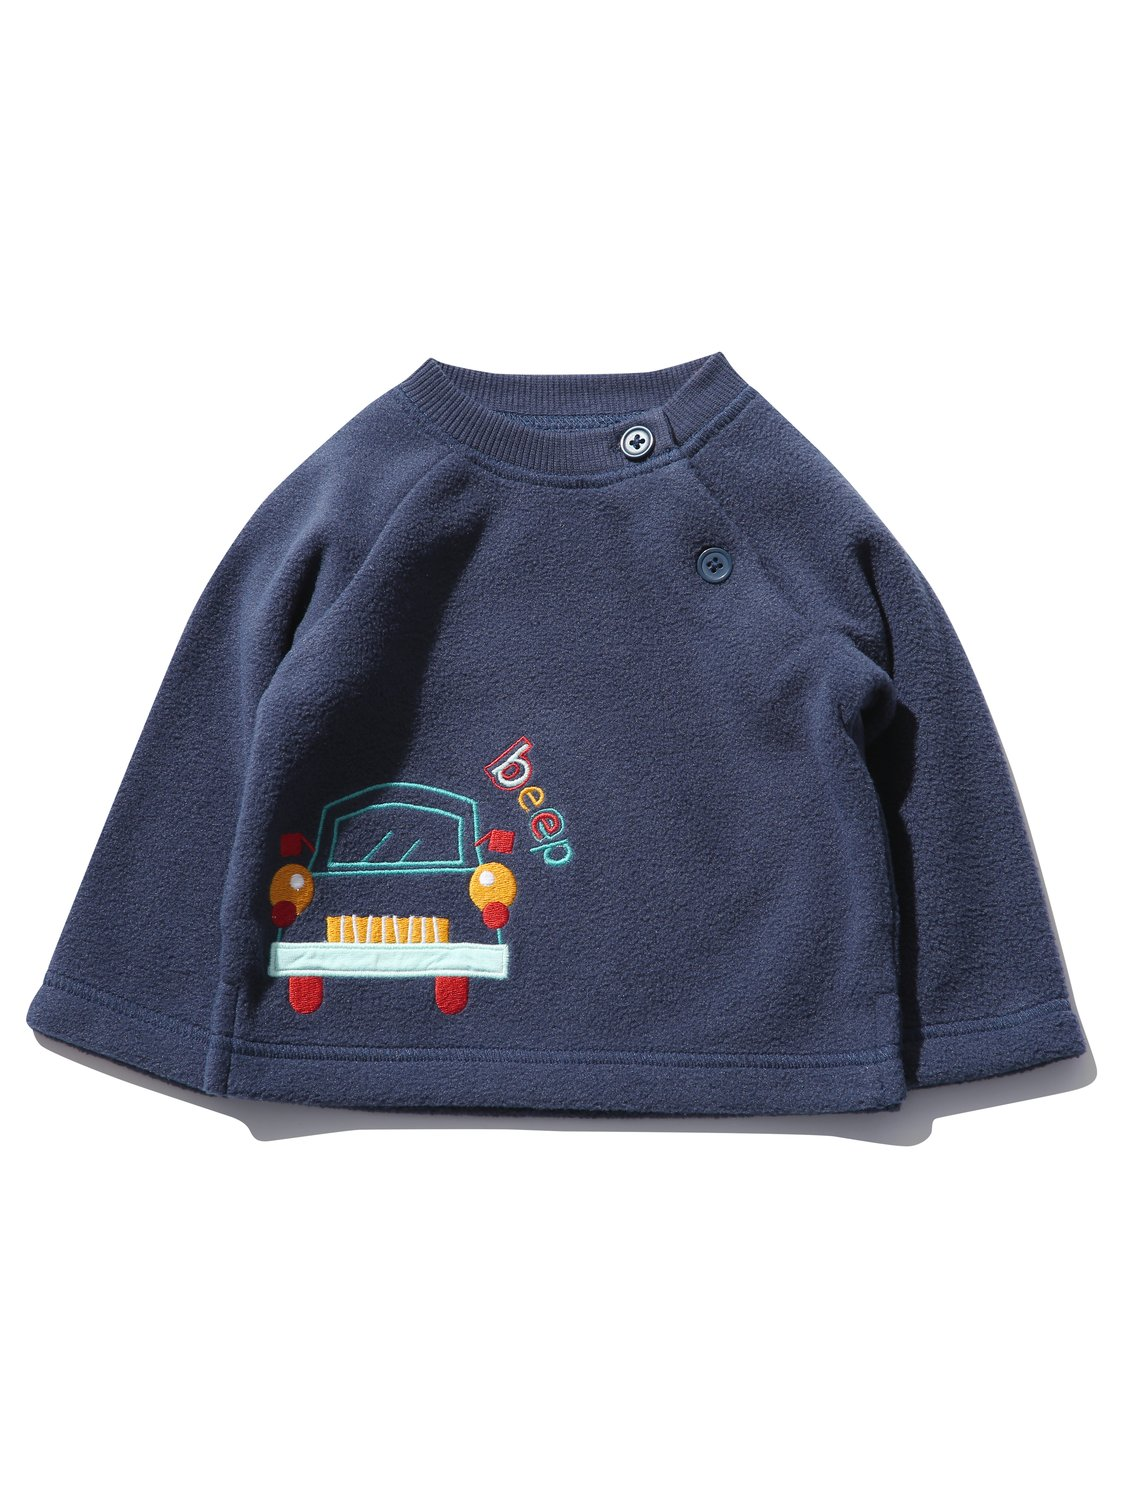 Baby Clothes Kids Baby boy car embroidered fleece jumper with long sleeves - Navy